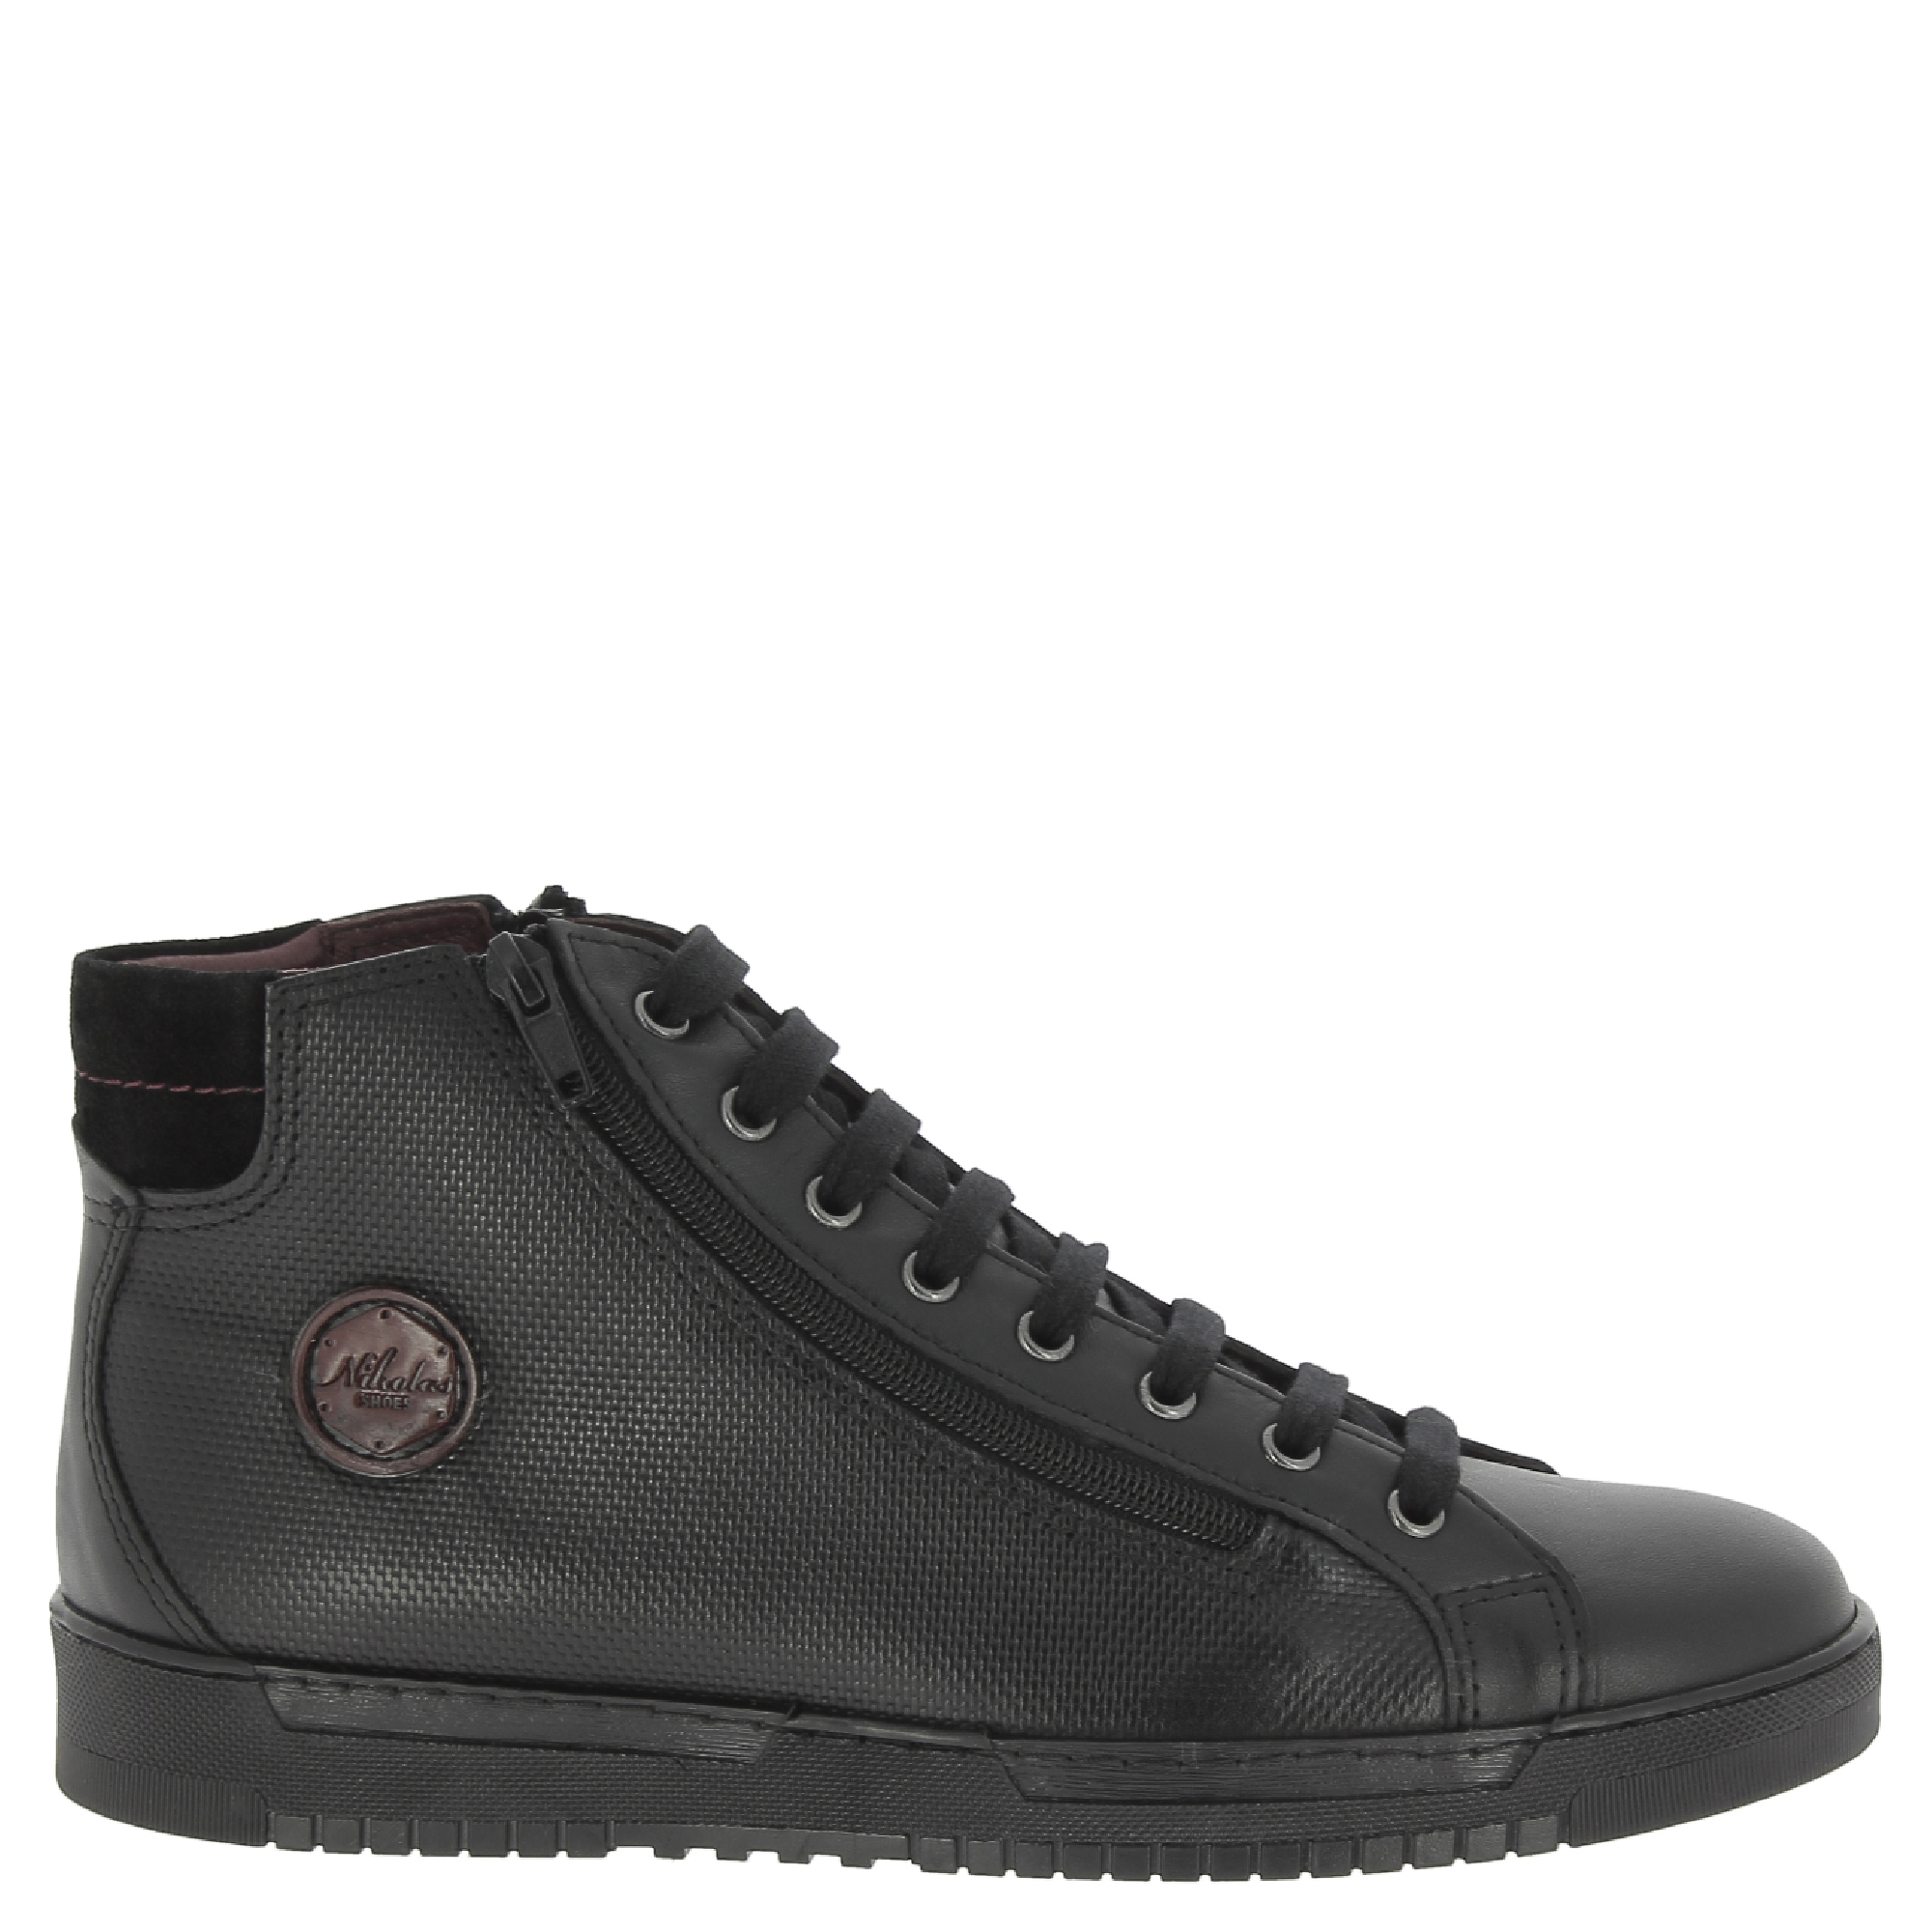 Nikolas-men-039-s-hi-top-trainers-in-black-Calf-leather-with-suede-ankle-detail thumbnail 8